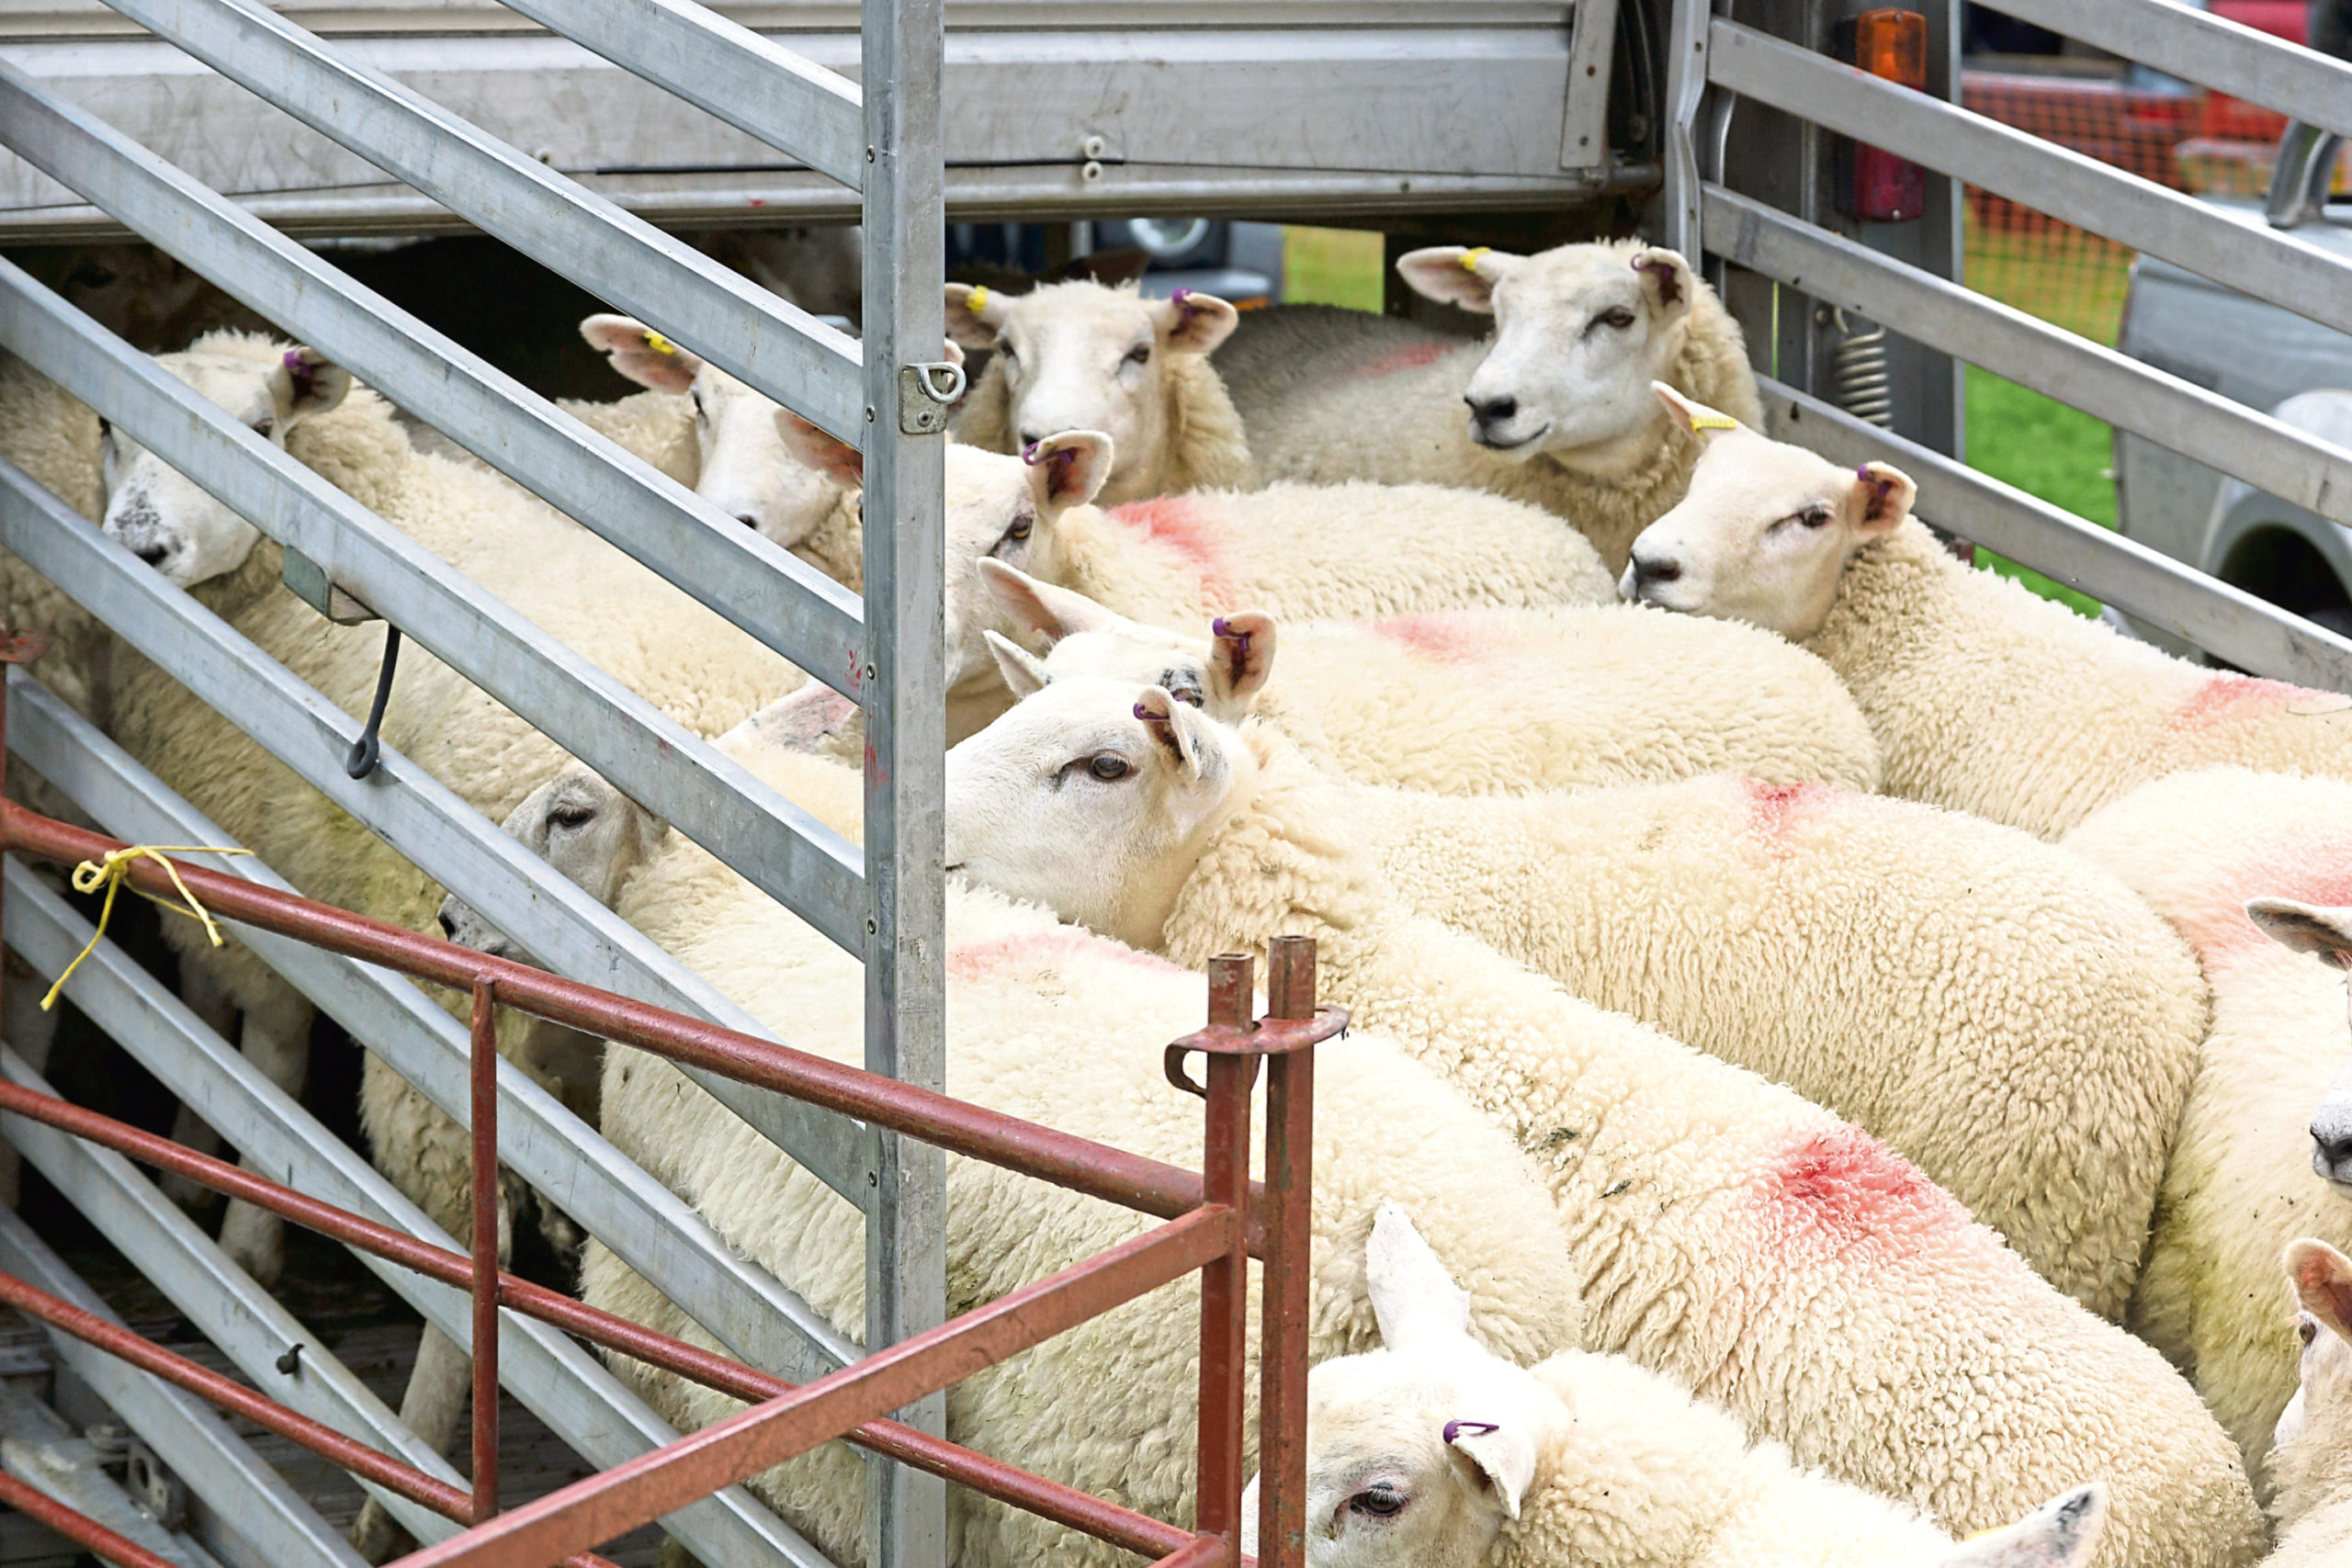 Should marts be forced to close, everyone involved in the livestock trade would suffer financially.